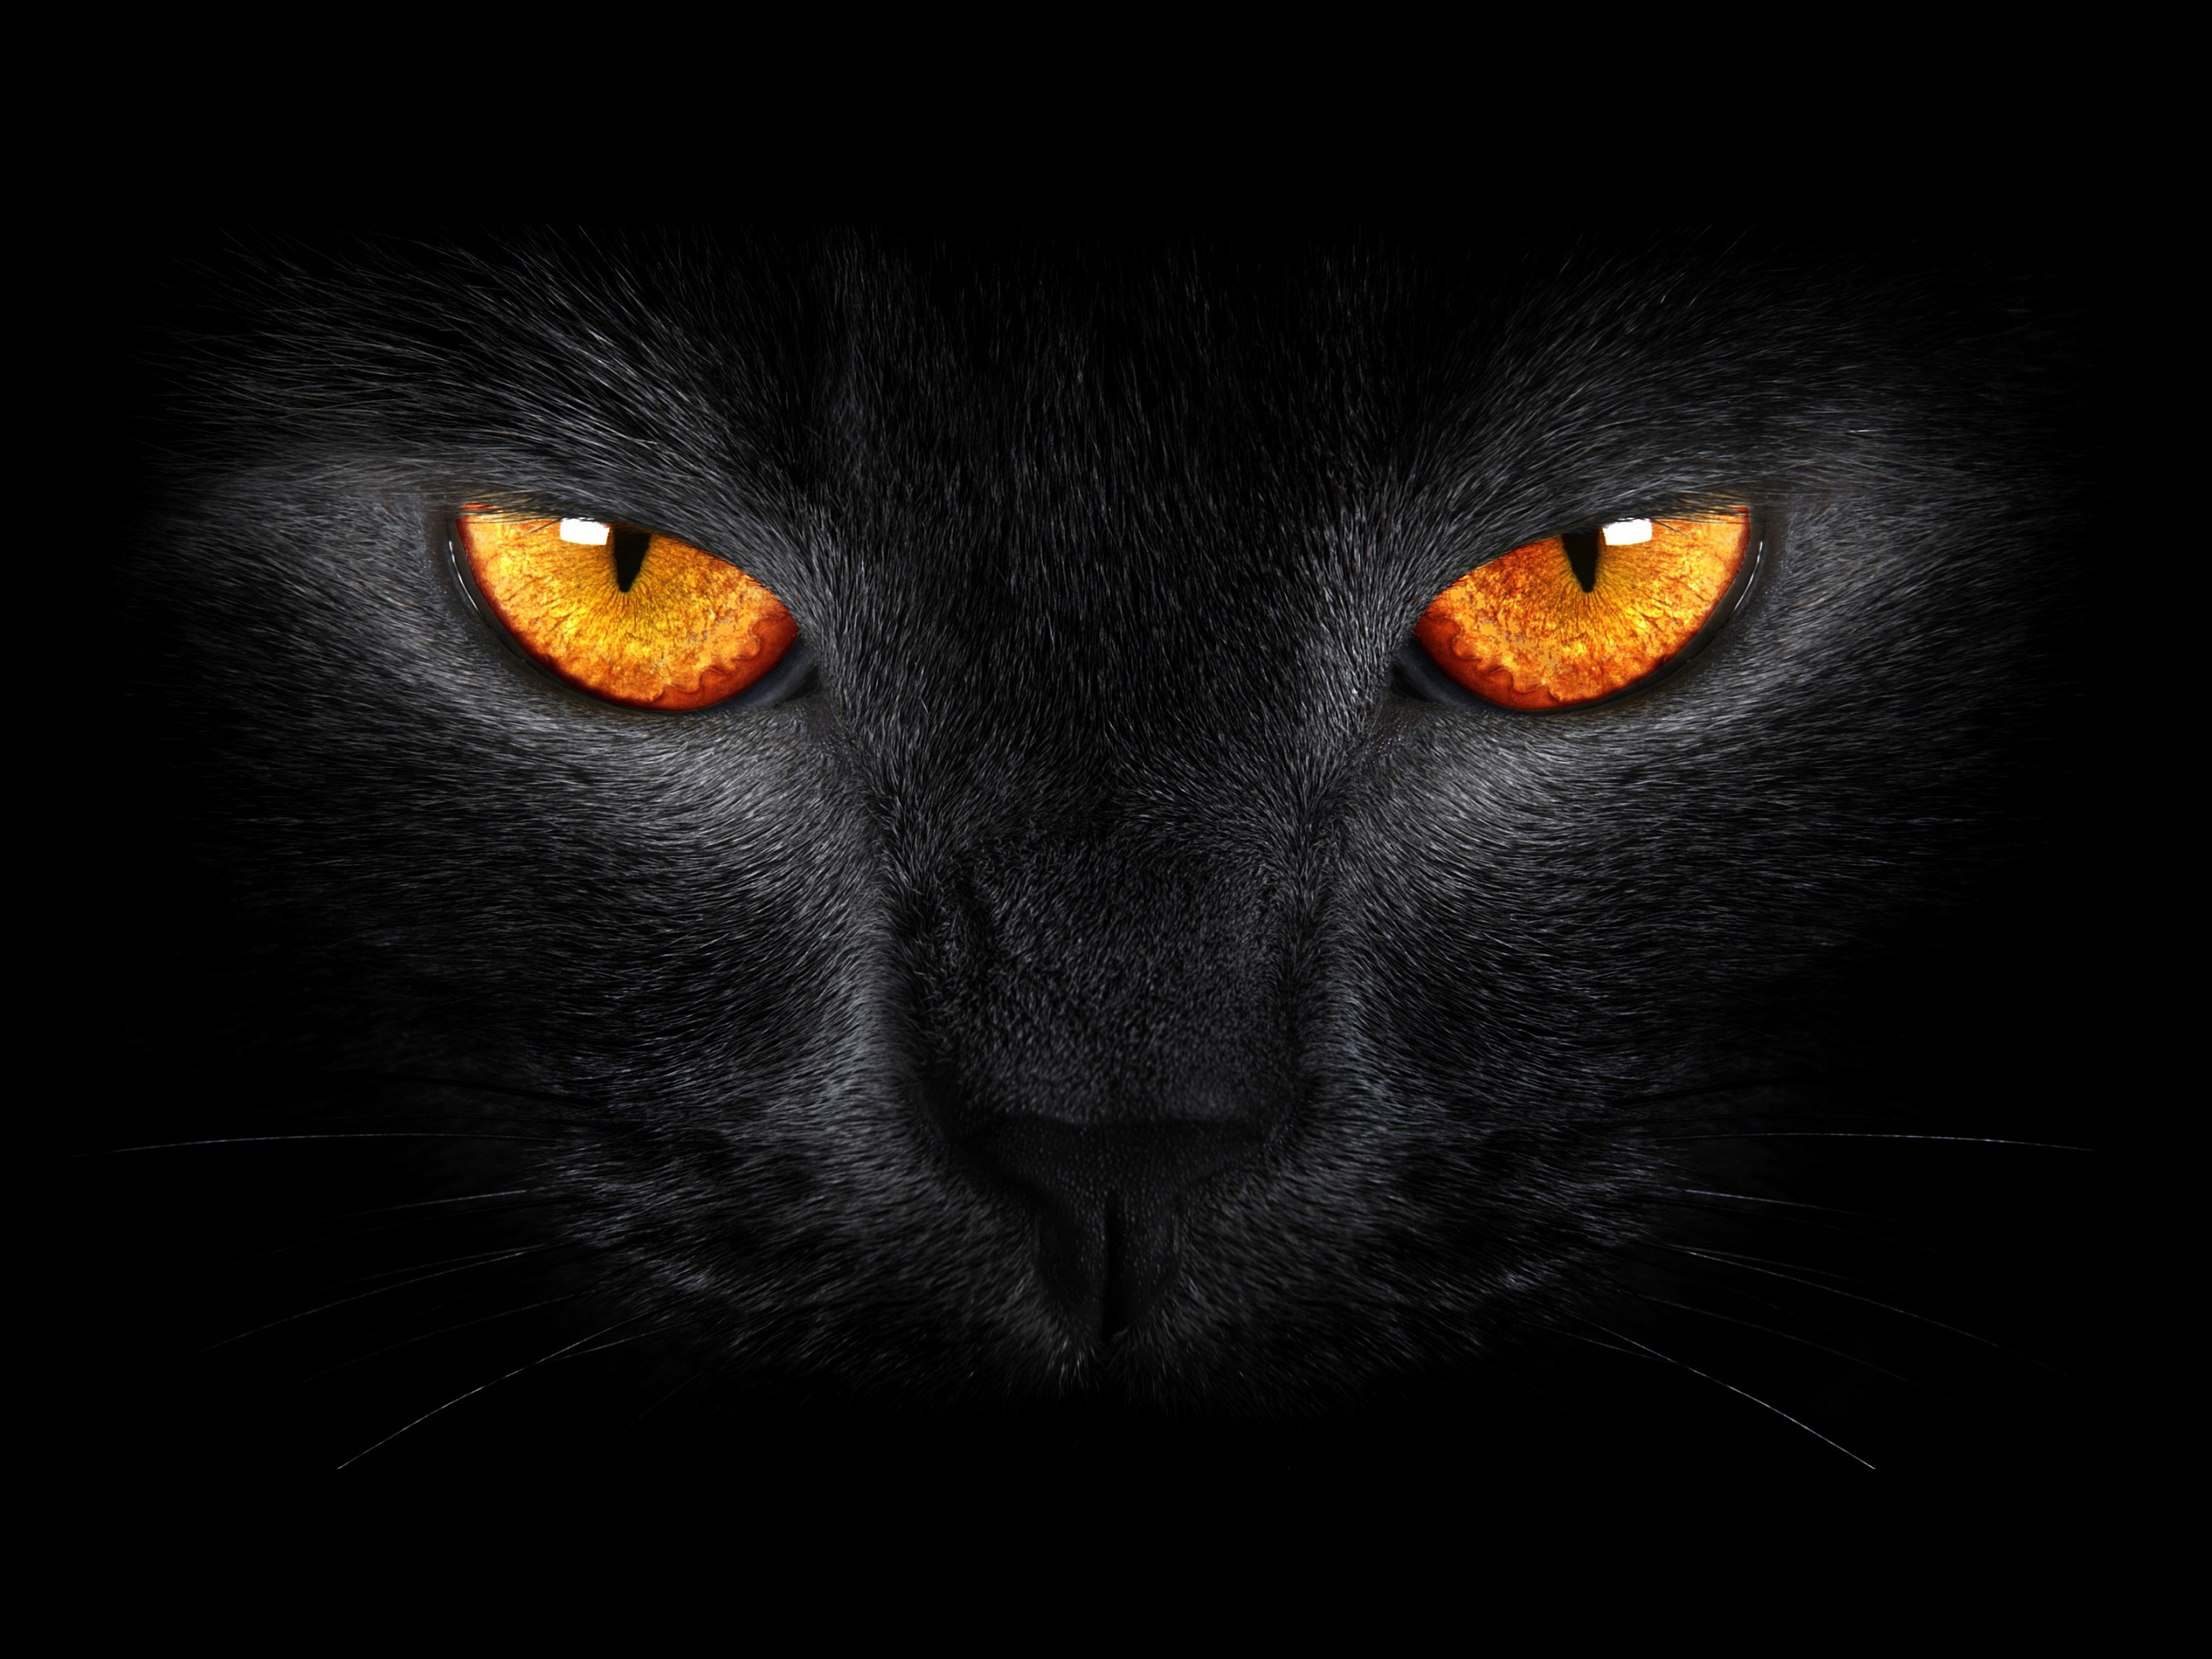 Scary Cats Wallpapers Wallpaper Cave